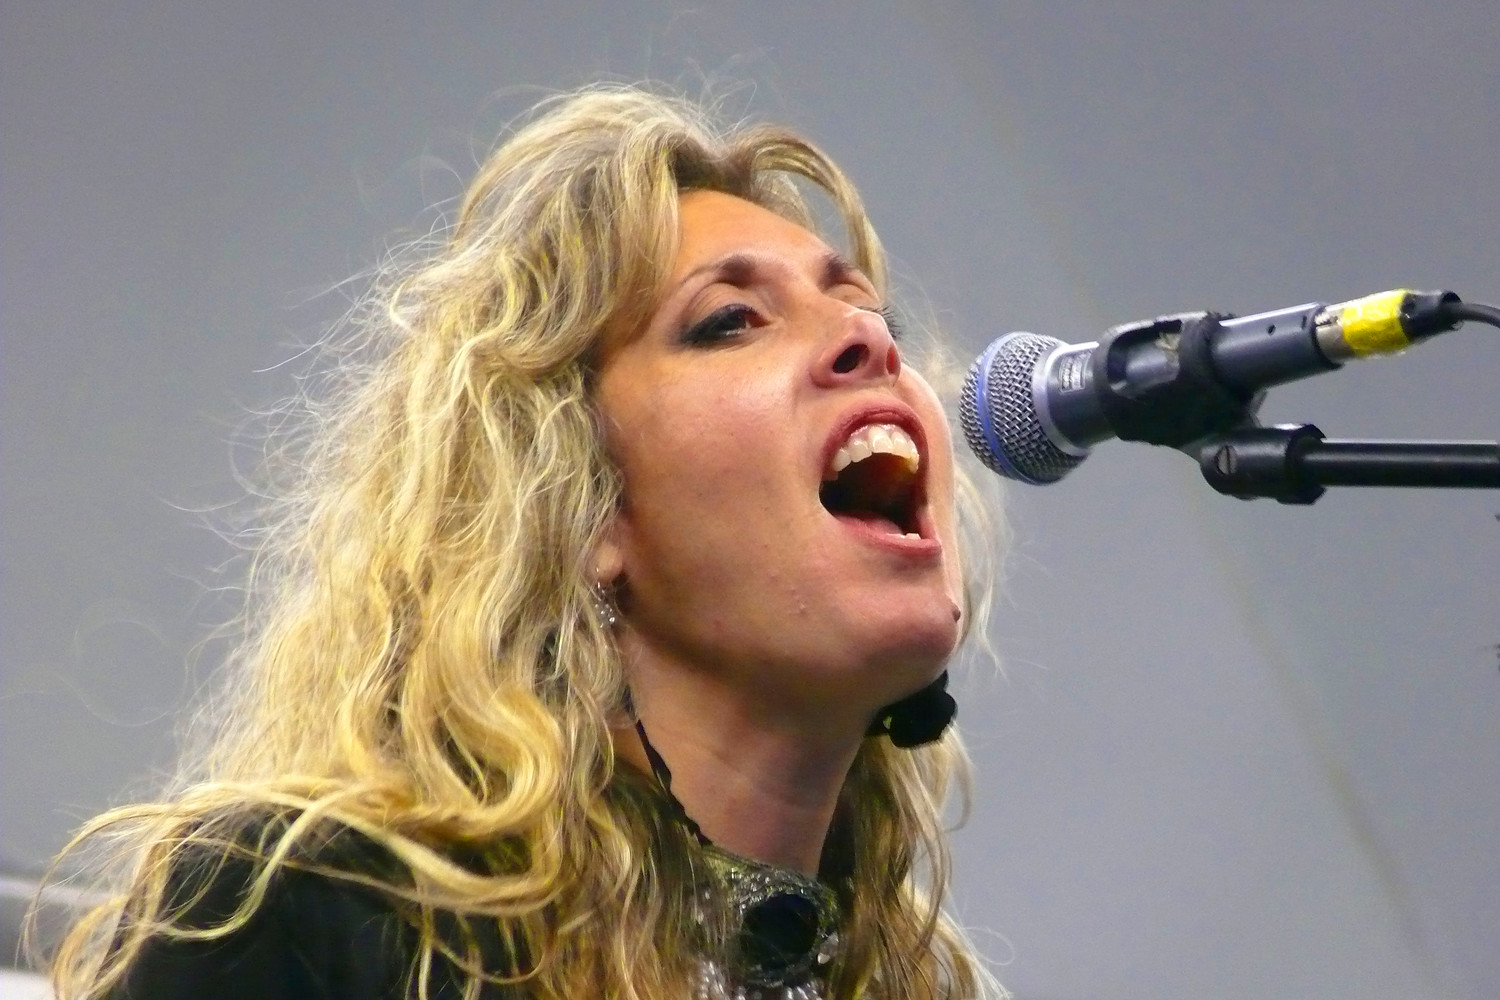 Suzanne G. Levy, a.k.a. Stevie Nicks, offered strong vocals at a concert preceding the fireworks.